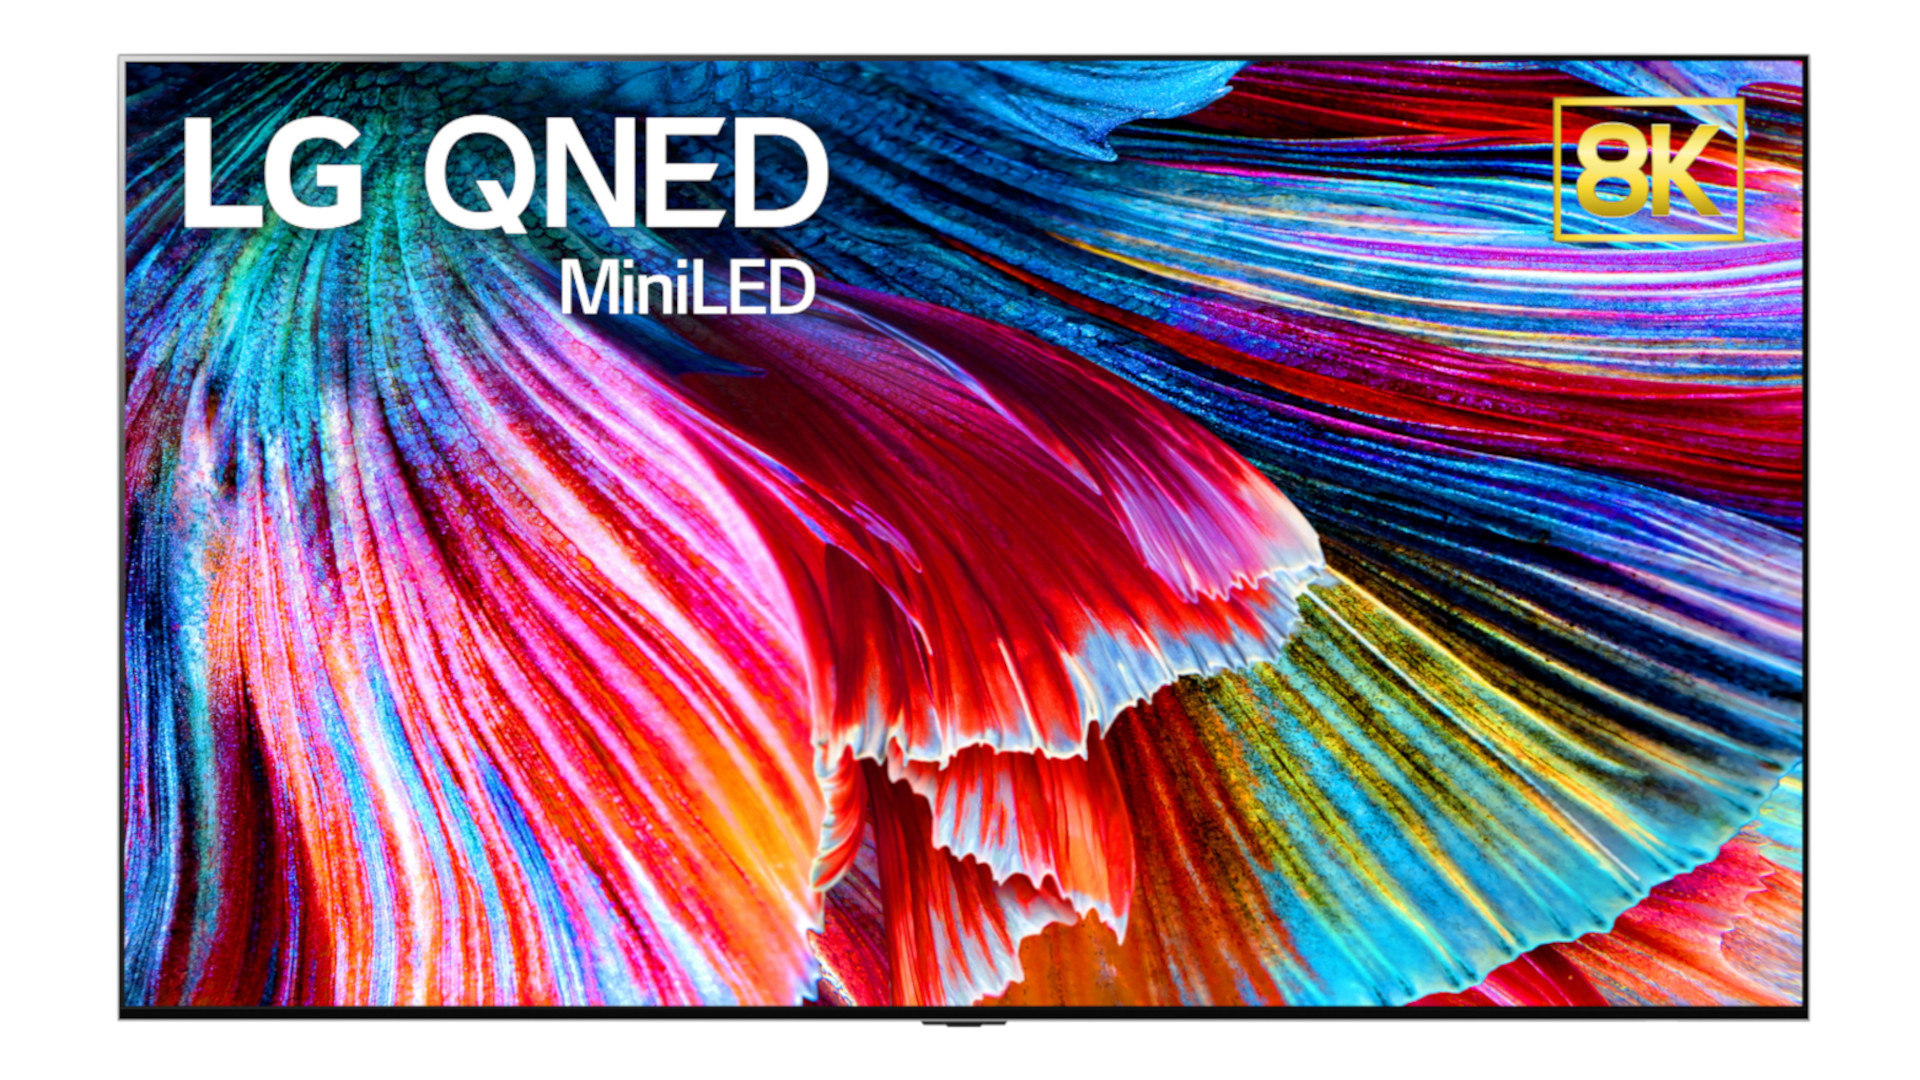 LG's first QNED Mini LED TV will feature up to 30,000 tiny LEDs